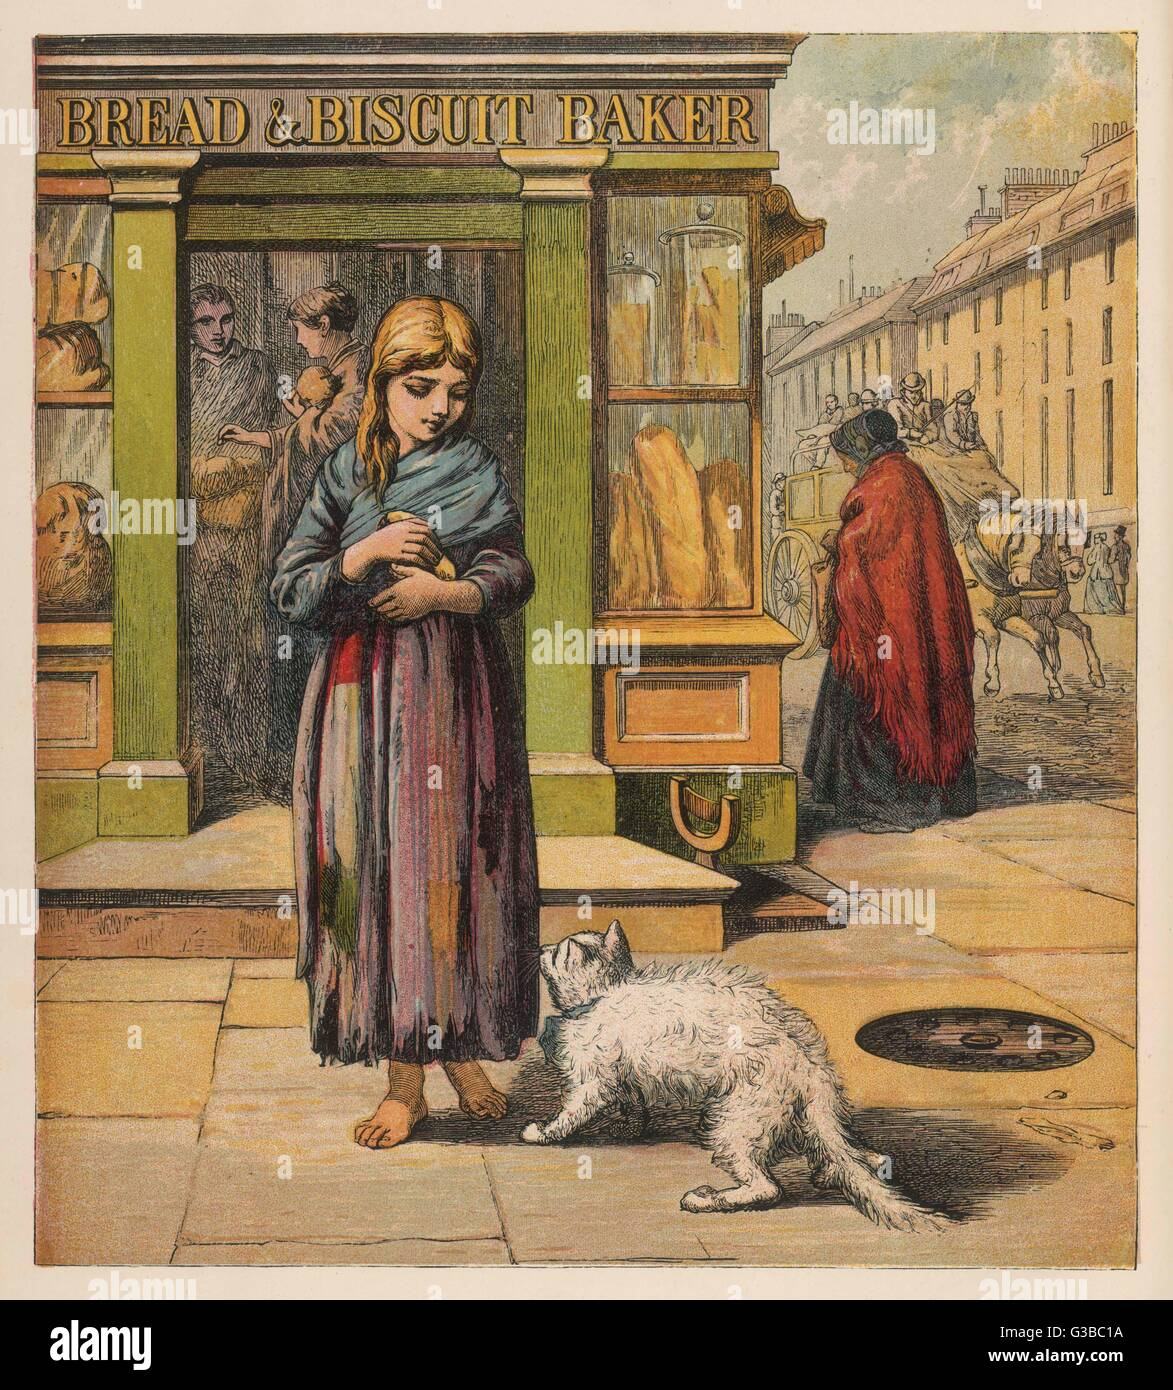 A street girl has bought some  bread from a shop - a white  cat shows interest ... (1 of 2)      Date: circa 1860s - Stock Image